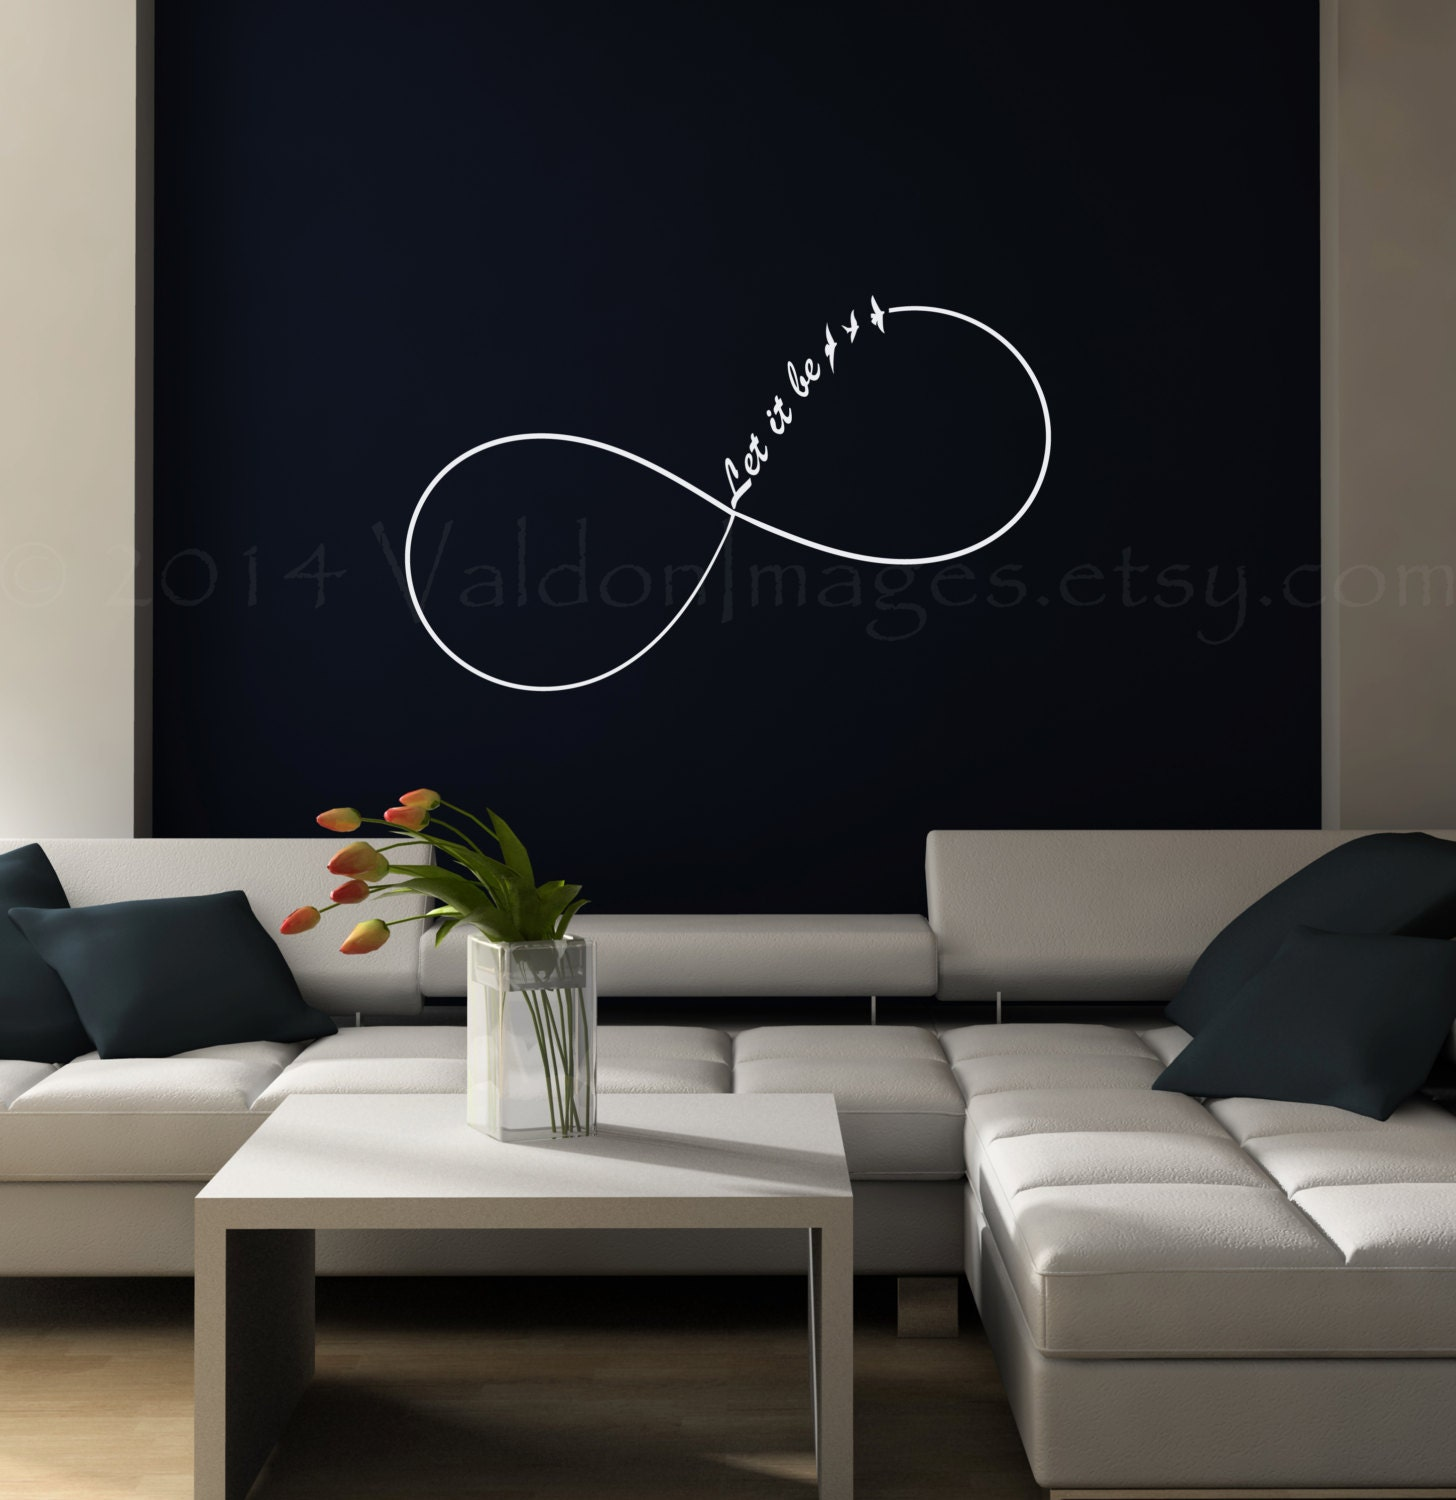 Wall Decals For Teens - teens can make their mark without ...